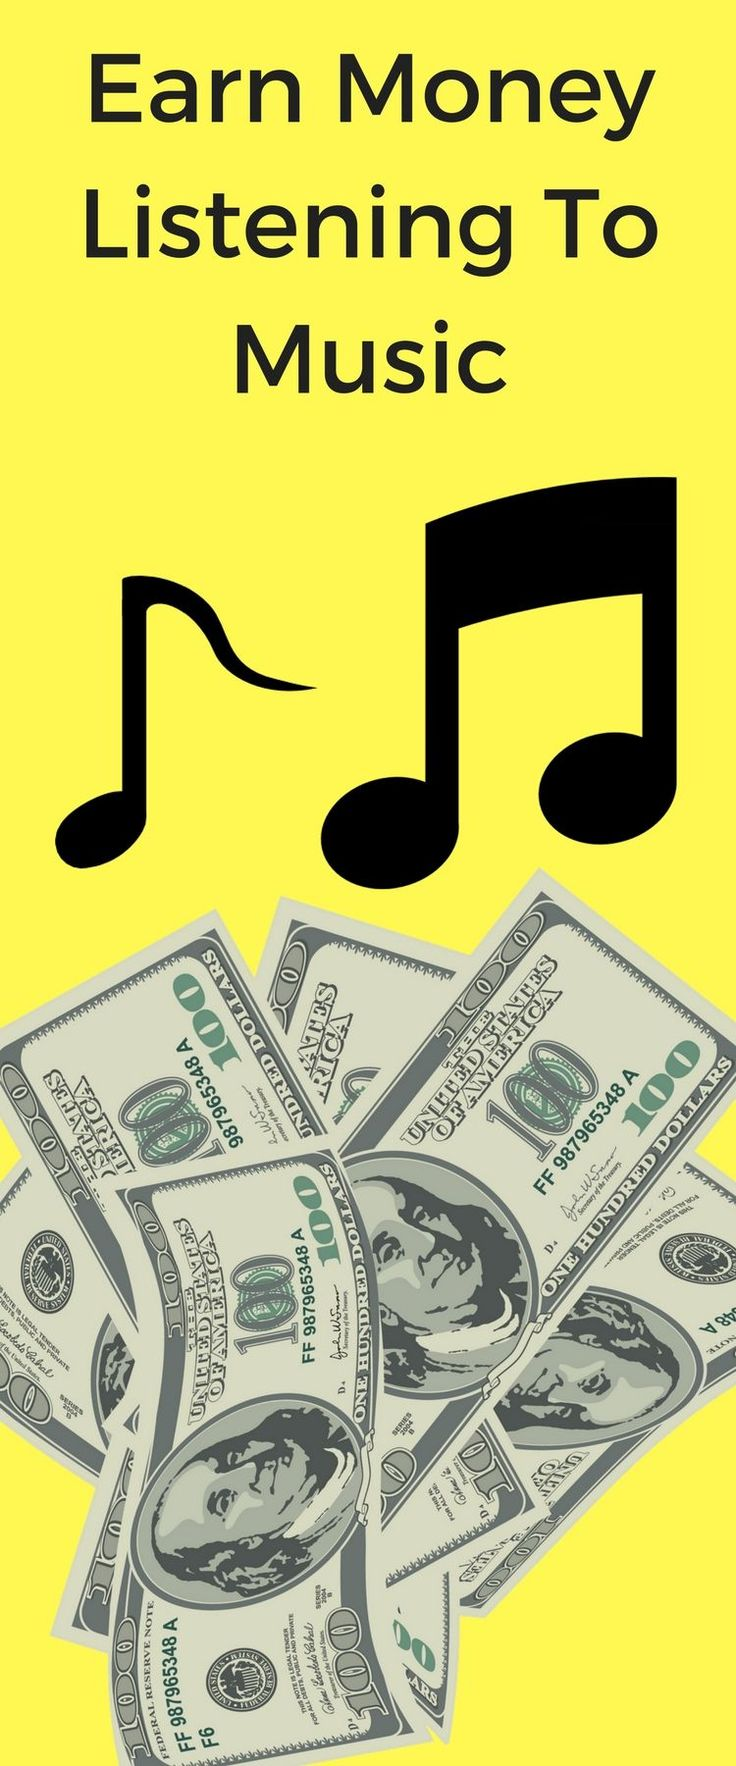 Earn real money by listening to music and leaving your honest opinion of the song. Click image to Signup. easy way to earn money | easy way to earn money fast | easy way to earn money for teens | easy way to earn money for kids | easy way to earn money online |make money easy | make money easy kids | make money easy and fast | make money easy at home | make money easy extra cash | Make Money Easy | Make Money EASY FREE #makemoneyonline #makemoney #makemoneyfromhome #trending #trendingnow…